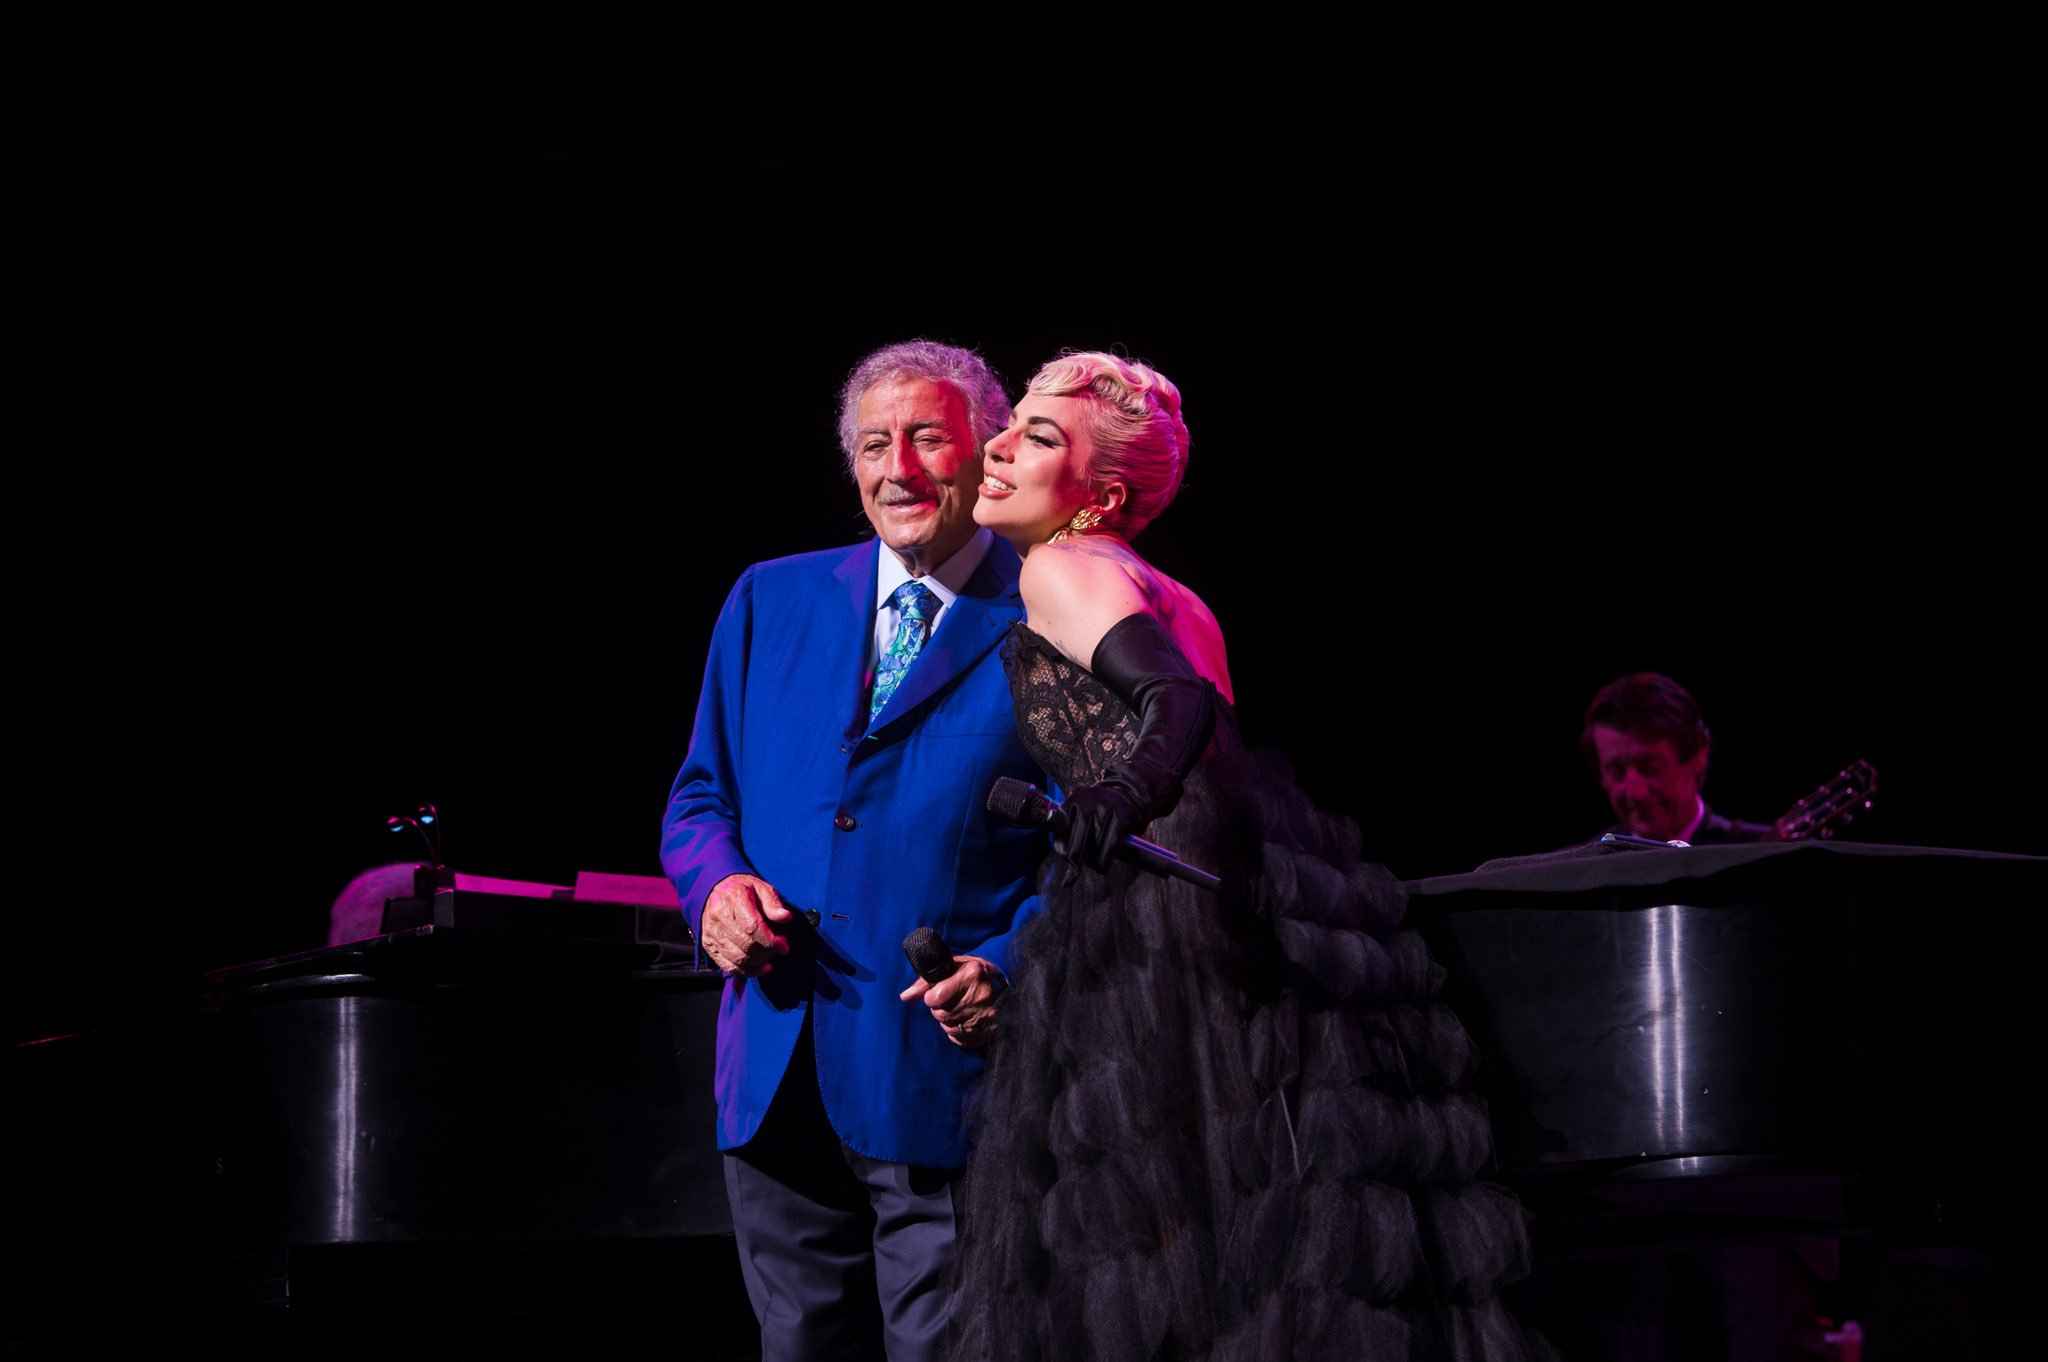 Reloaded twaddle – RT @Wolf_Trap: Surprise! Look who joined @itstonybennett on stage for a couple d...